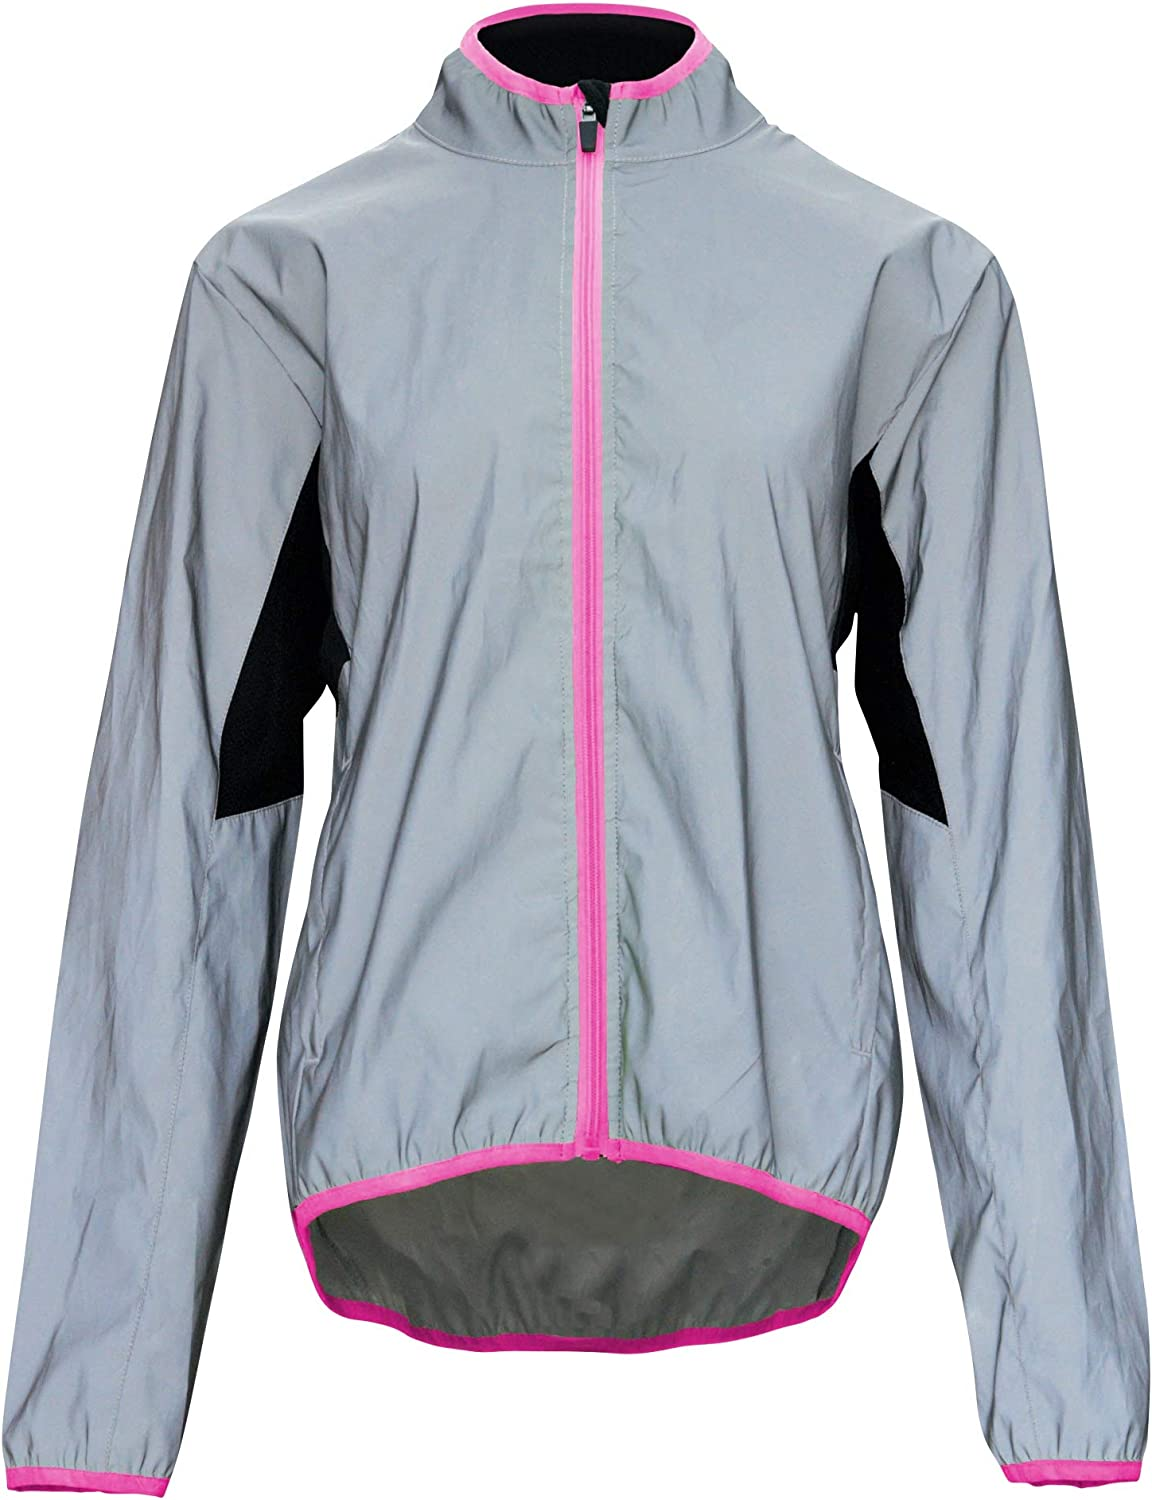 Bpbtti Women's Reflective Safety Running Cycling Jackets Lightweight Windbreaker- Full Front Zipper & Two Side Pockets : Clothing, Shoes & Jewelry